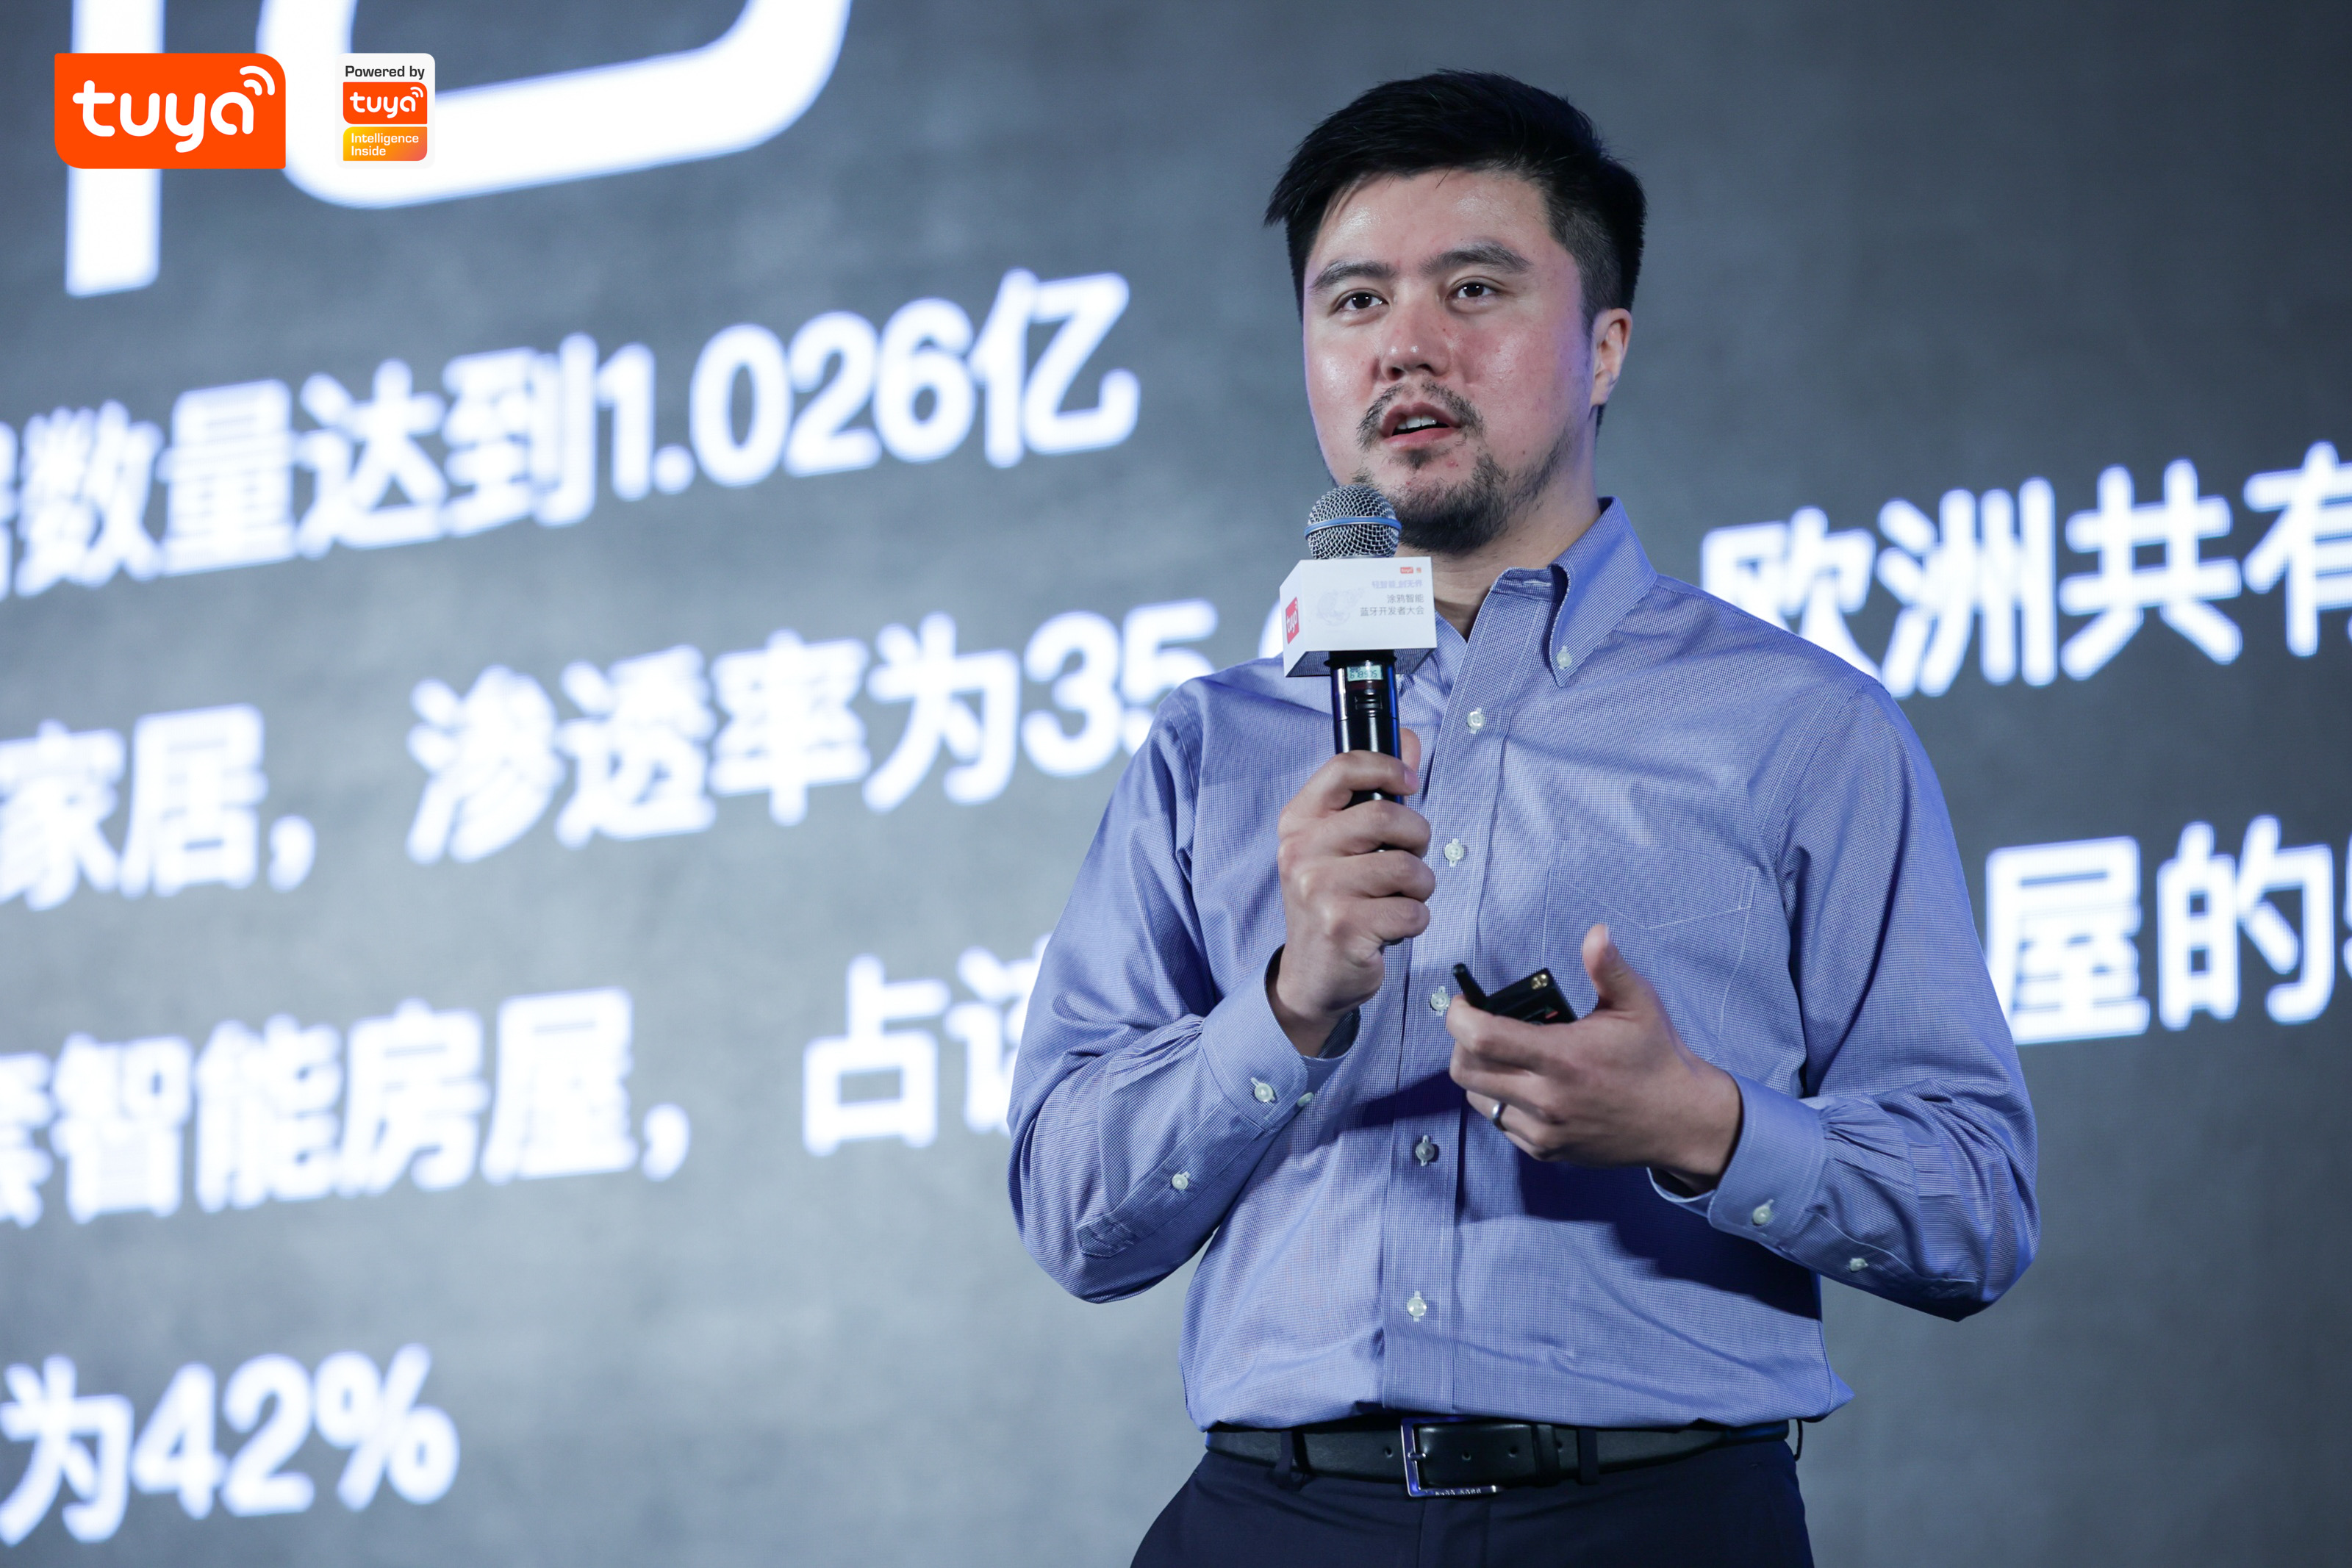 【Alex Yang, Co-founder and COO of Tuya Smart】